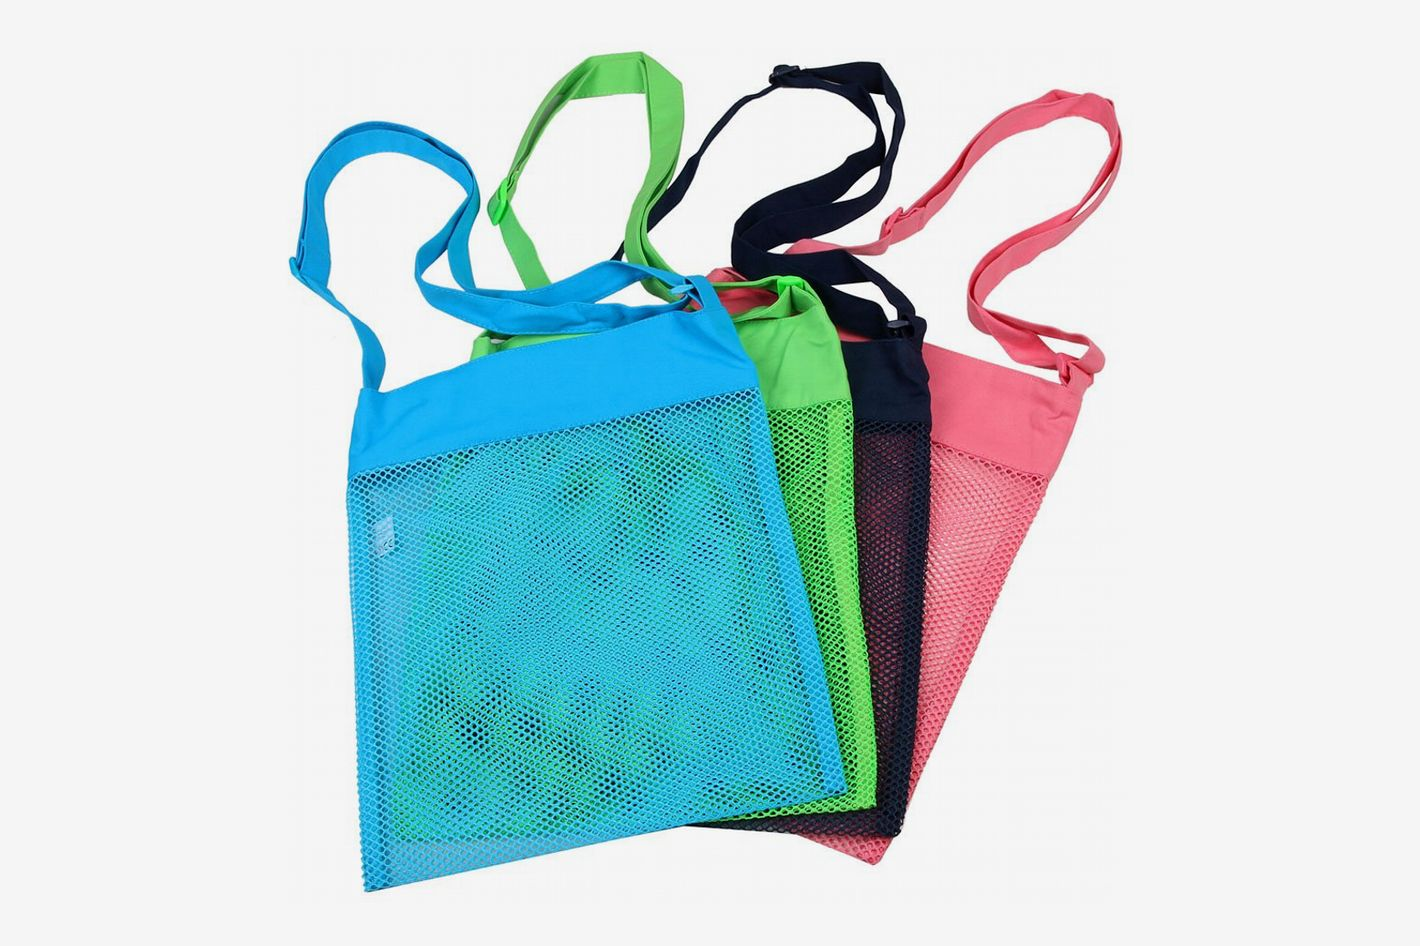 Colorful Mesh Sea Shell Bags with Adjustable Carrying Straps (4 PC Set)